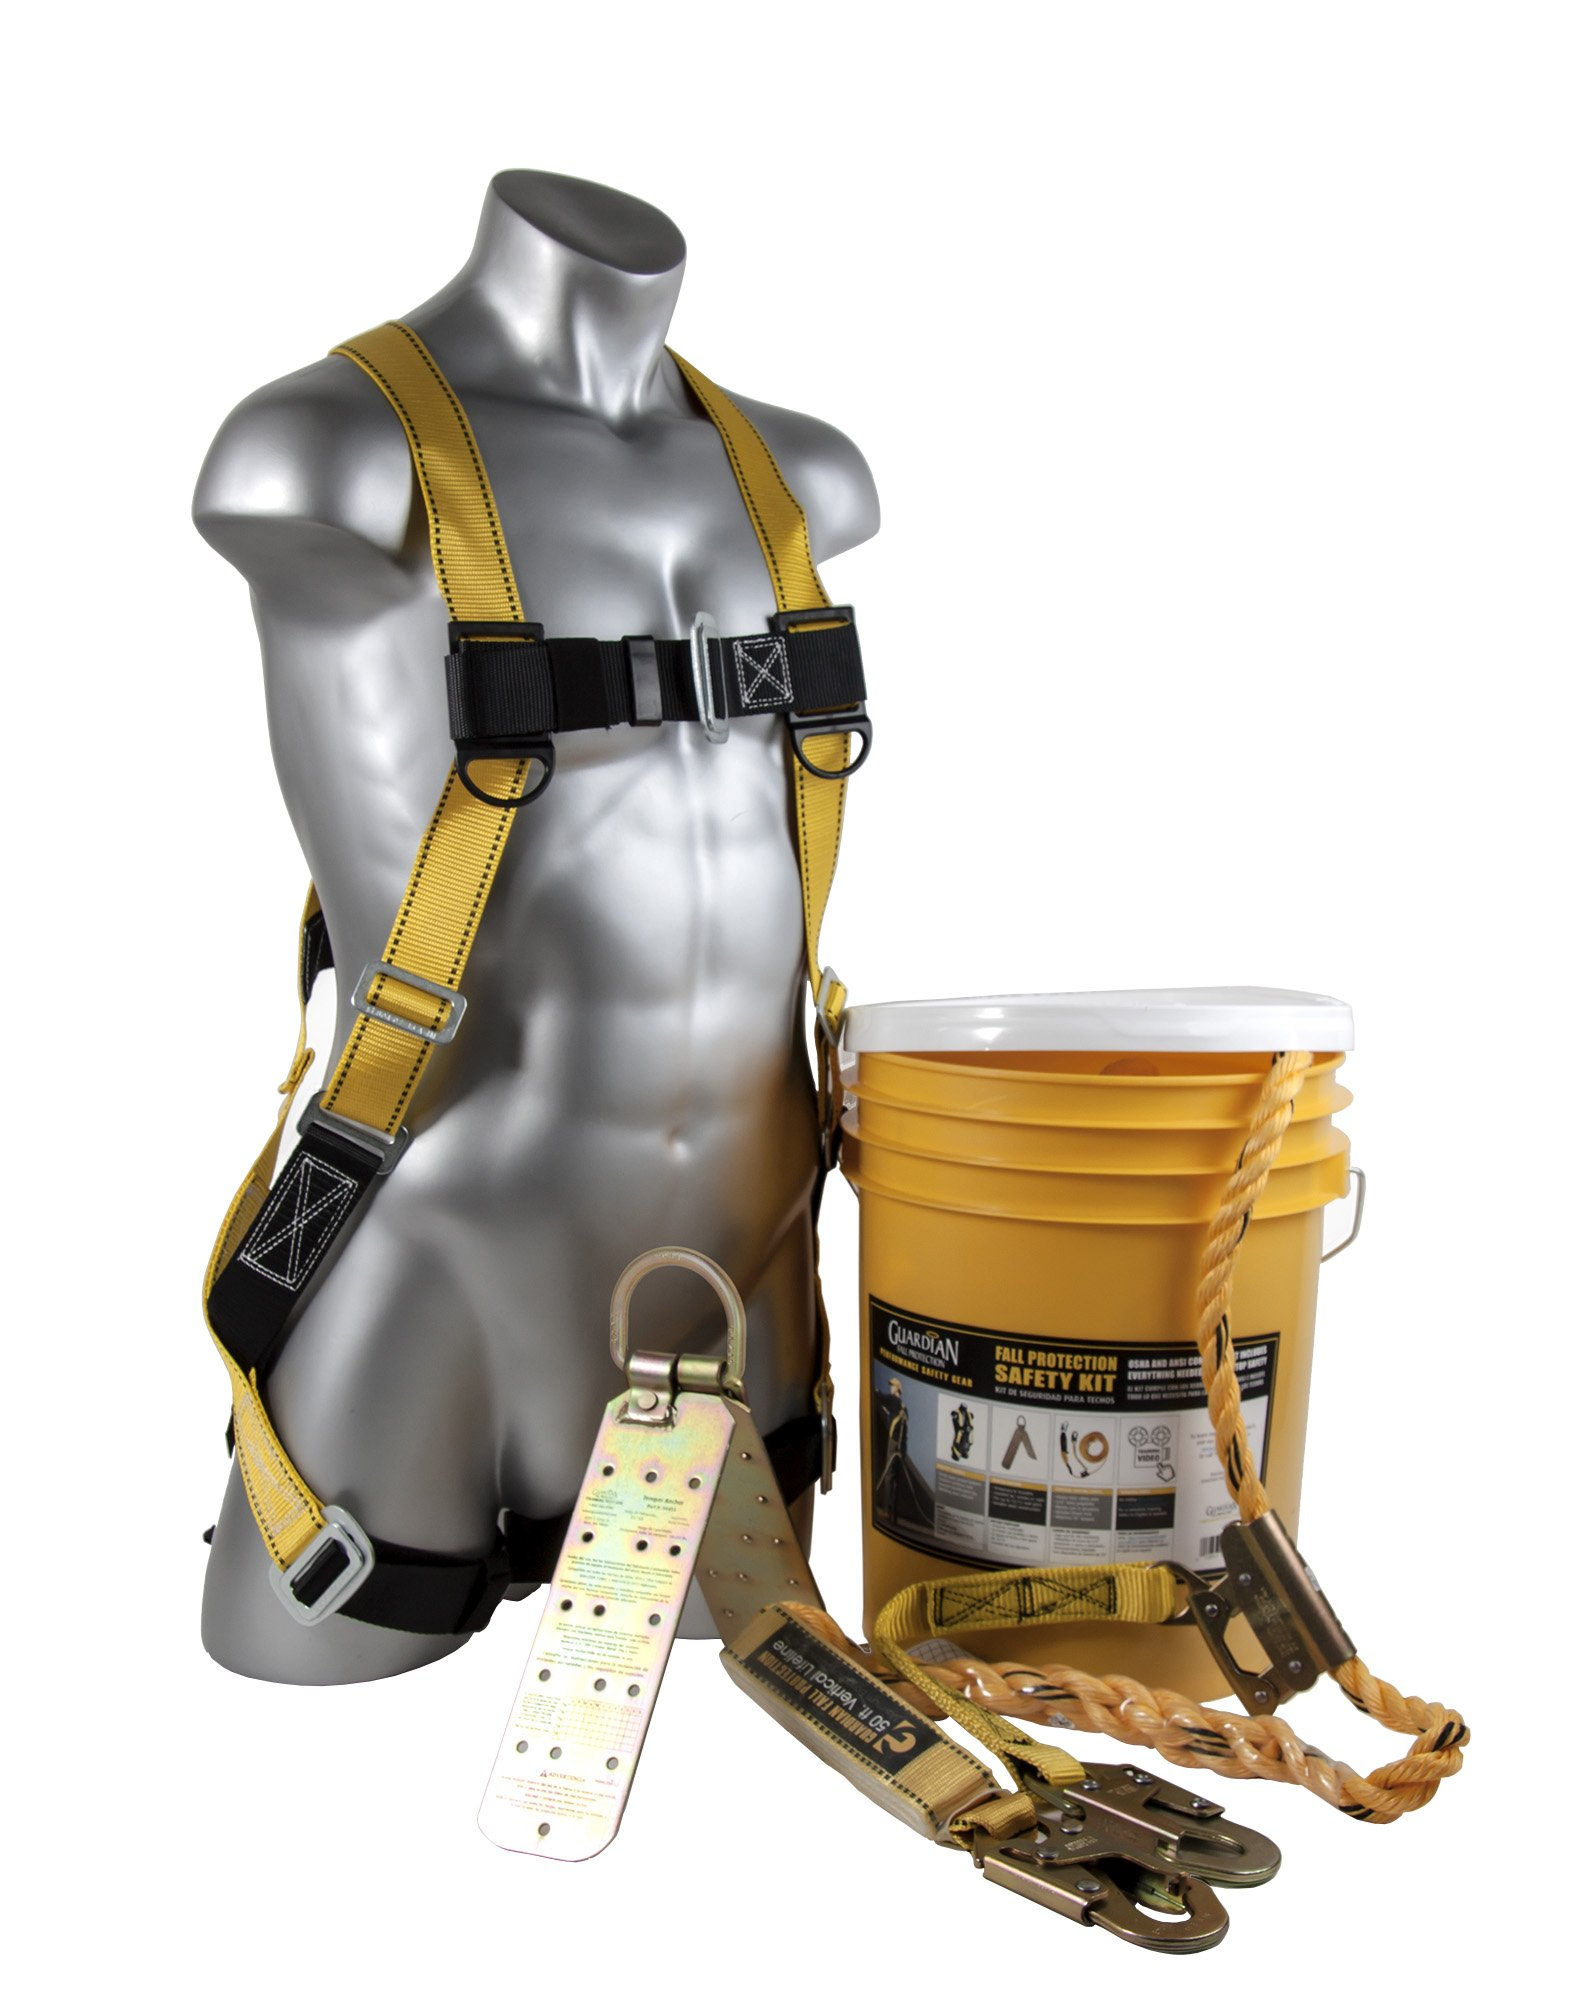 roofing harness safety kit amazon comguardian fall protection (qualcraft) 00815 bos t50 bucket of safe tie with